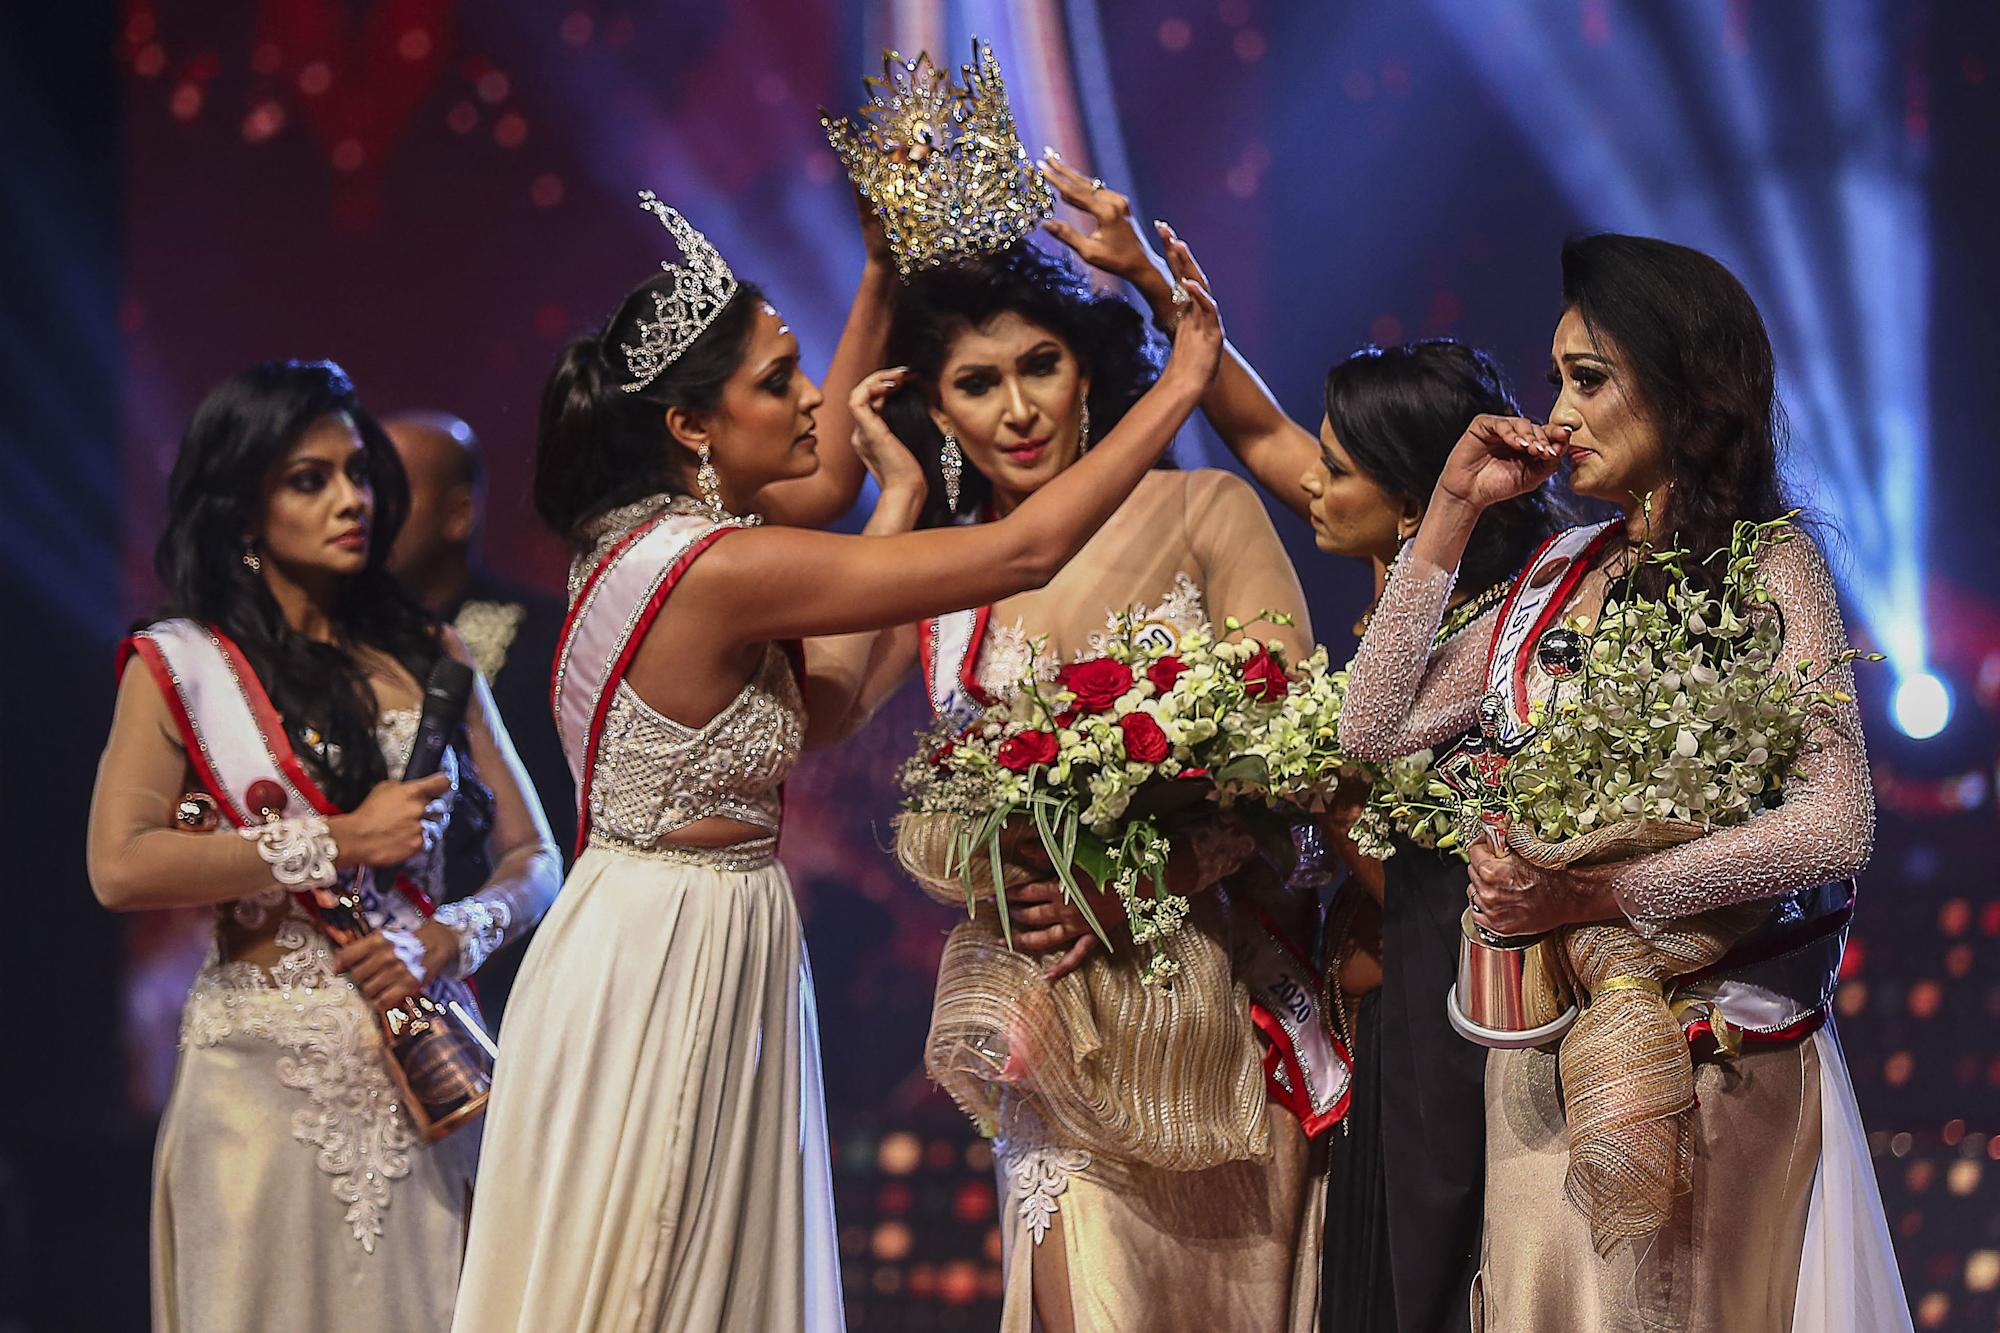 Mrs World quits title after brutal pageant crown attack